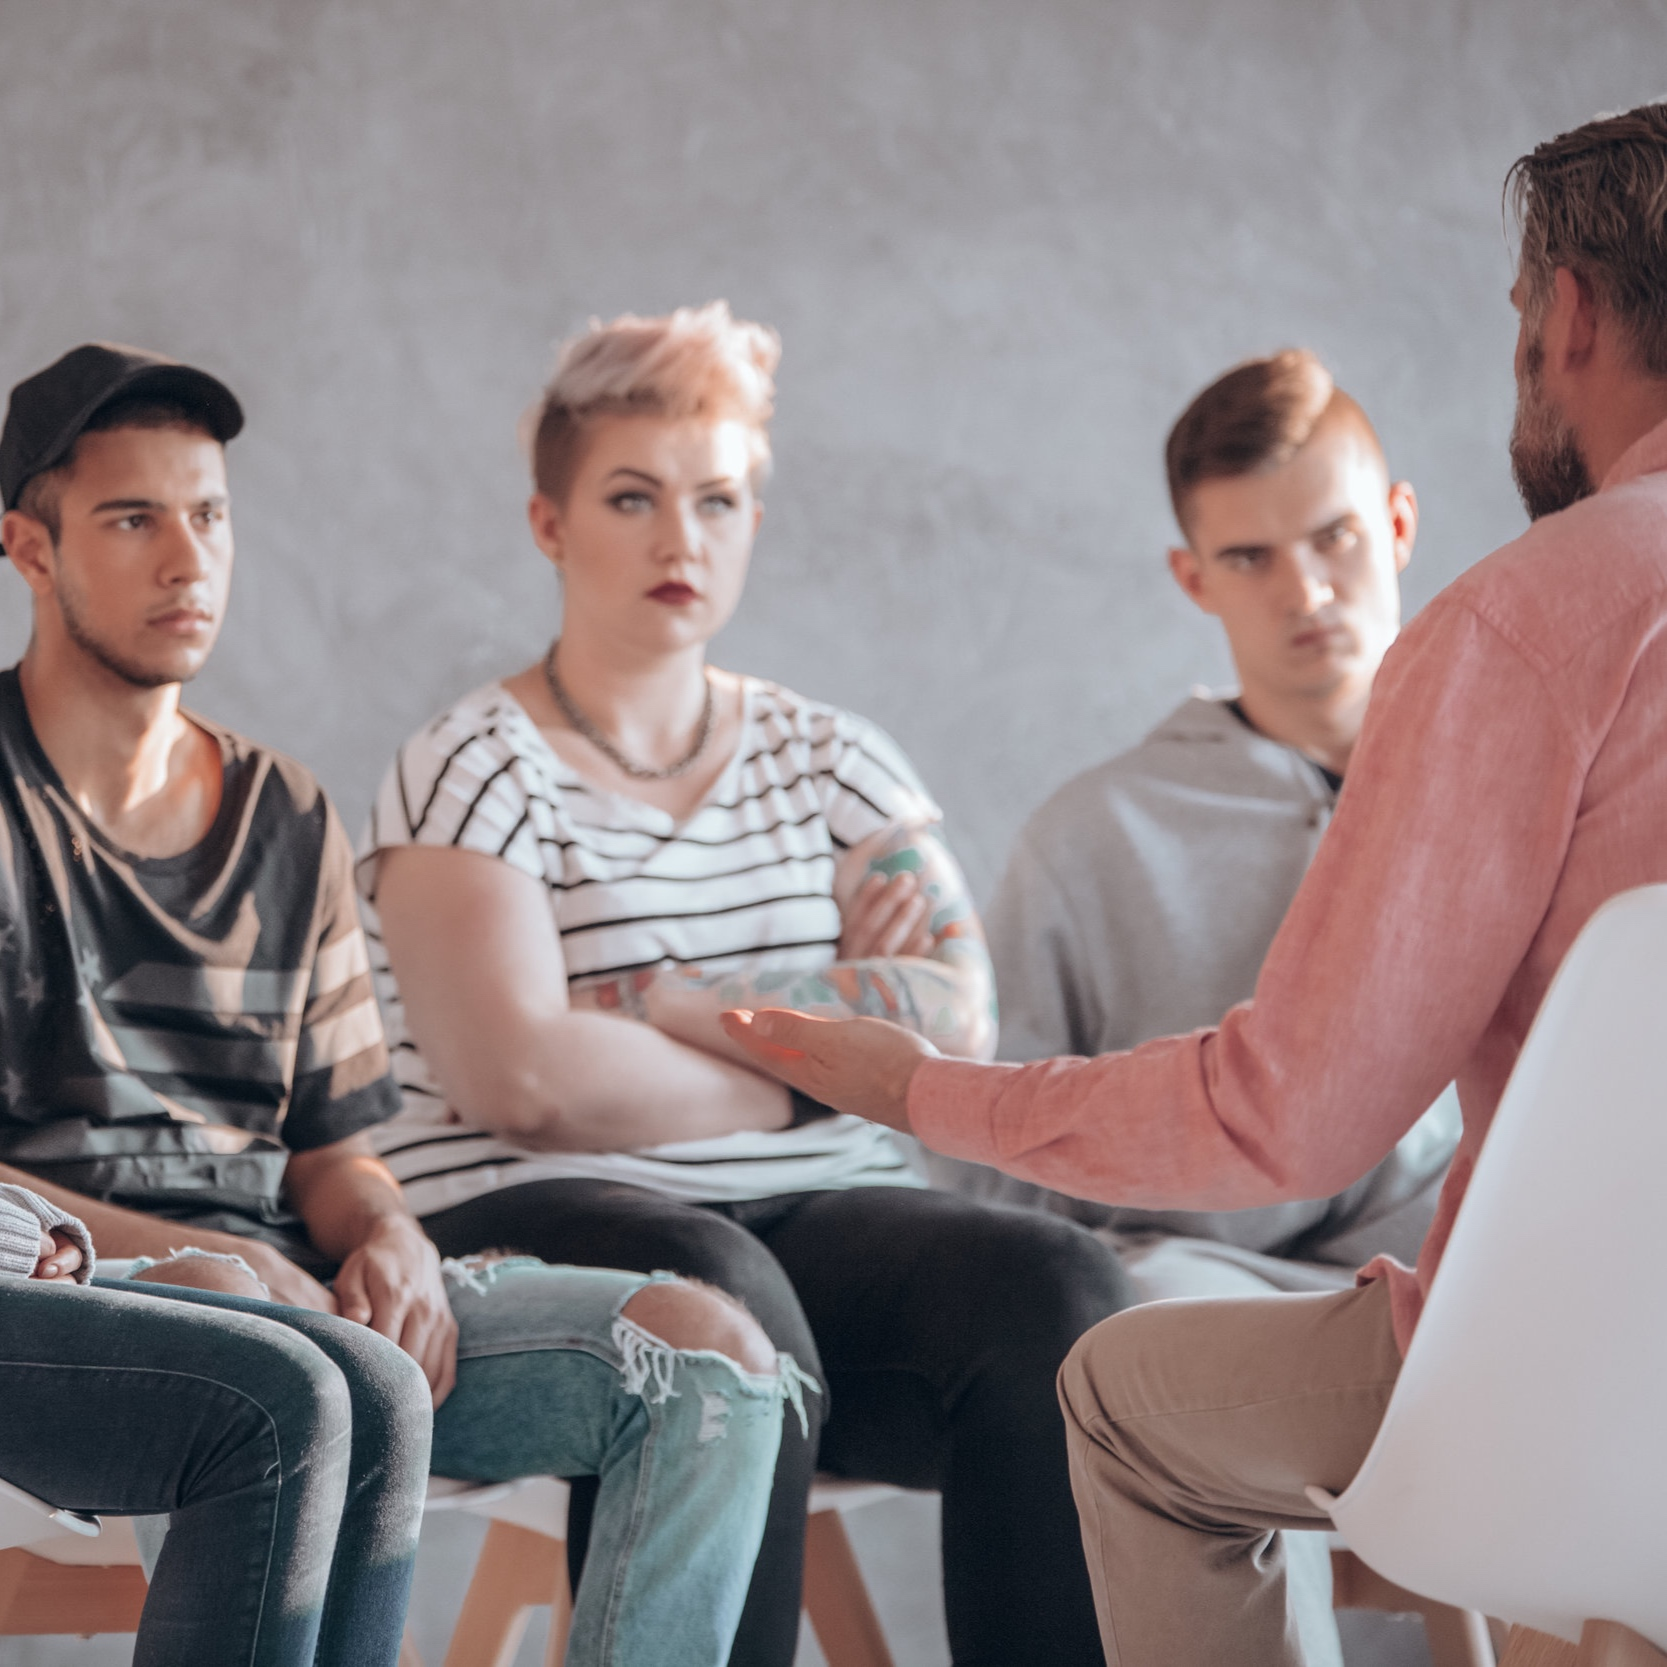 Intervention and Diversion - We offer one-on-one and group mentoring to increase protective factors for high-risk or runaway youth (ages 12-17). We also collaborate with Project Hope to divert individuals with prostitution-related criminal charges, focusing on increasing quality of life and developing safe, supportive connections within our community.